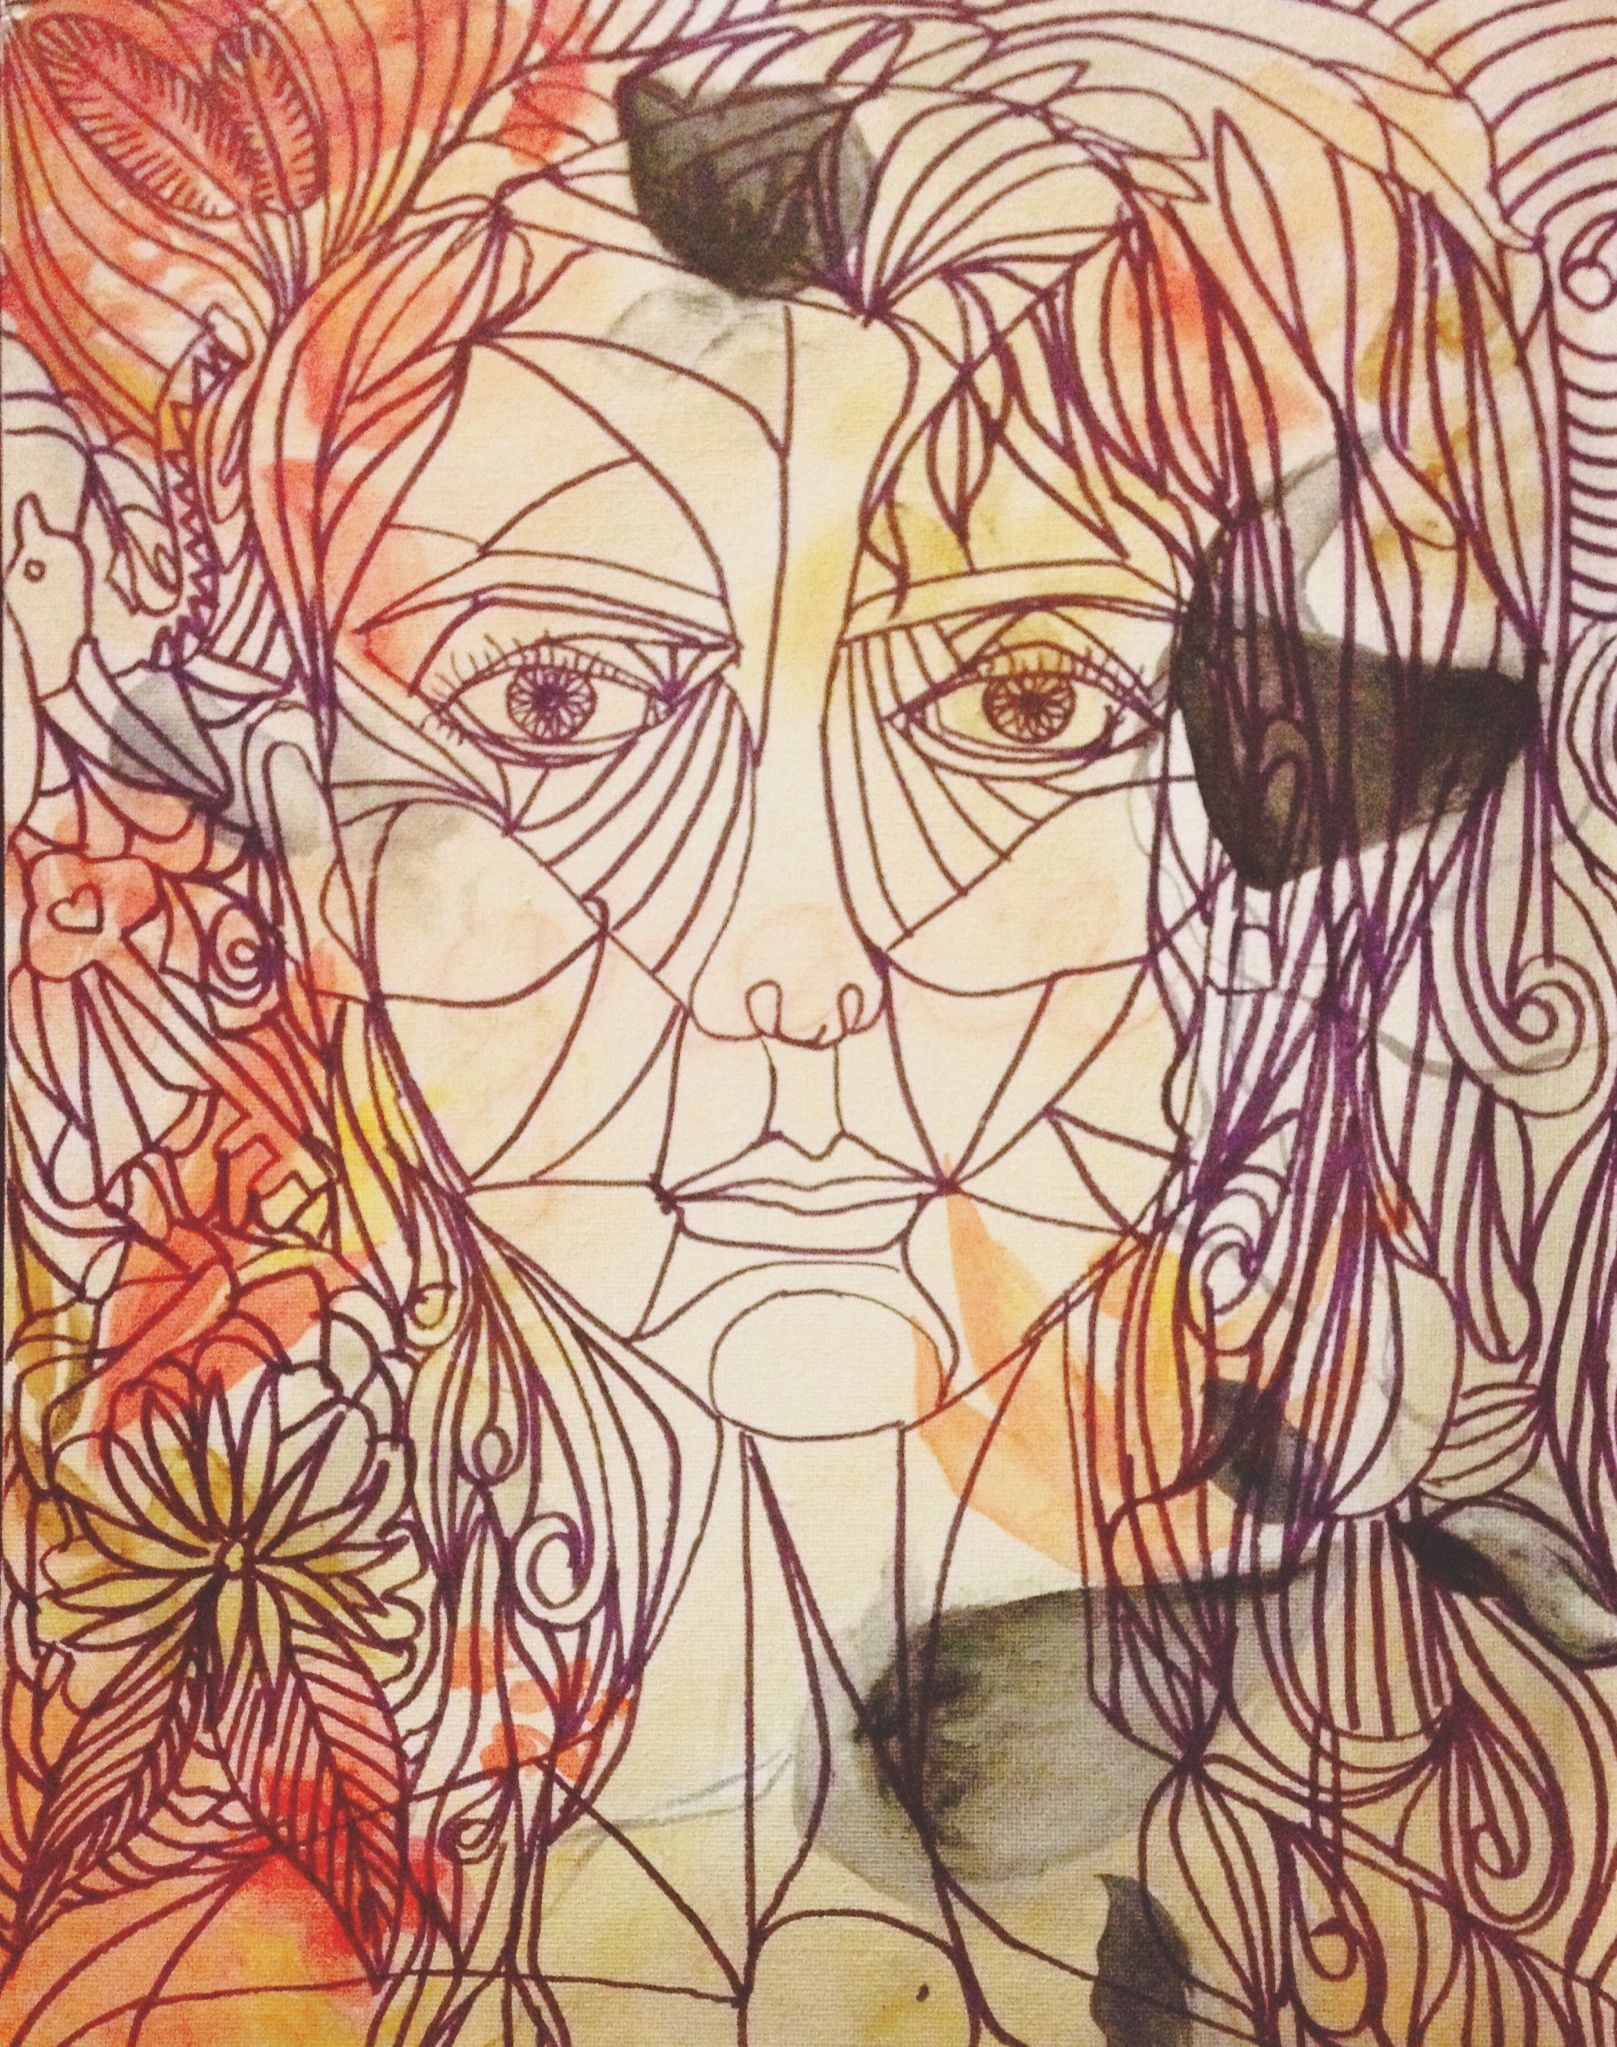 Sharpie Line Drawing Over Top Of An Abstract Floral Painting